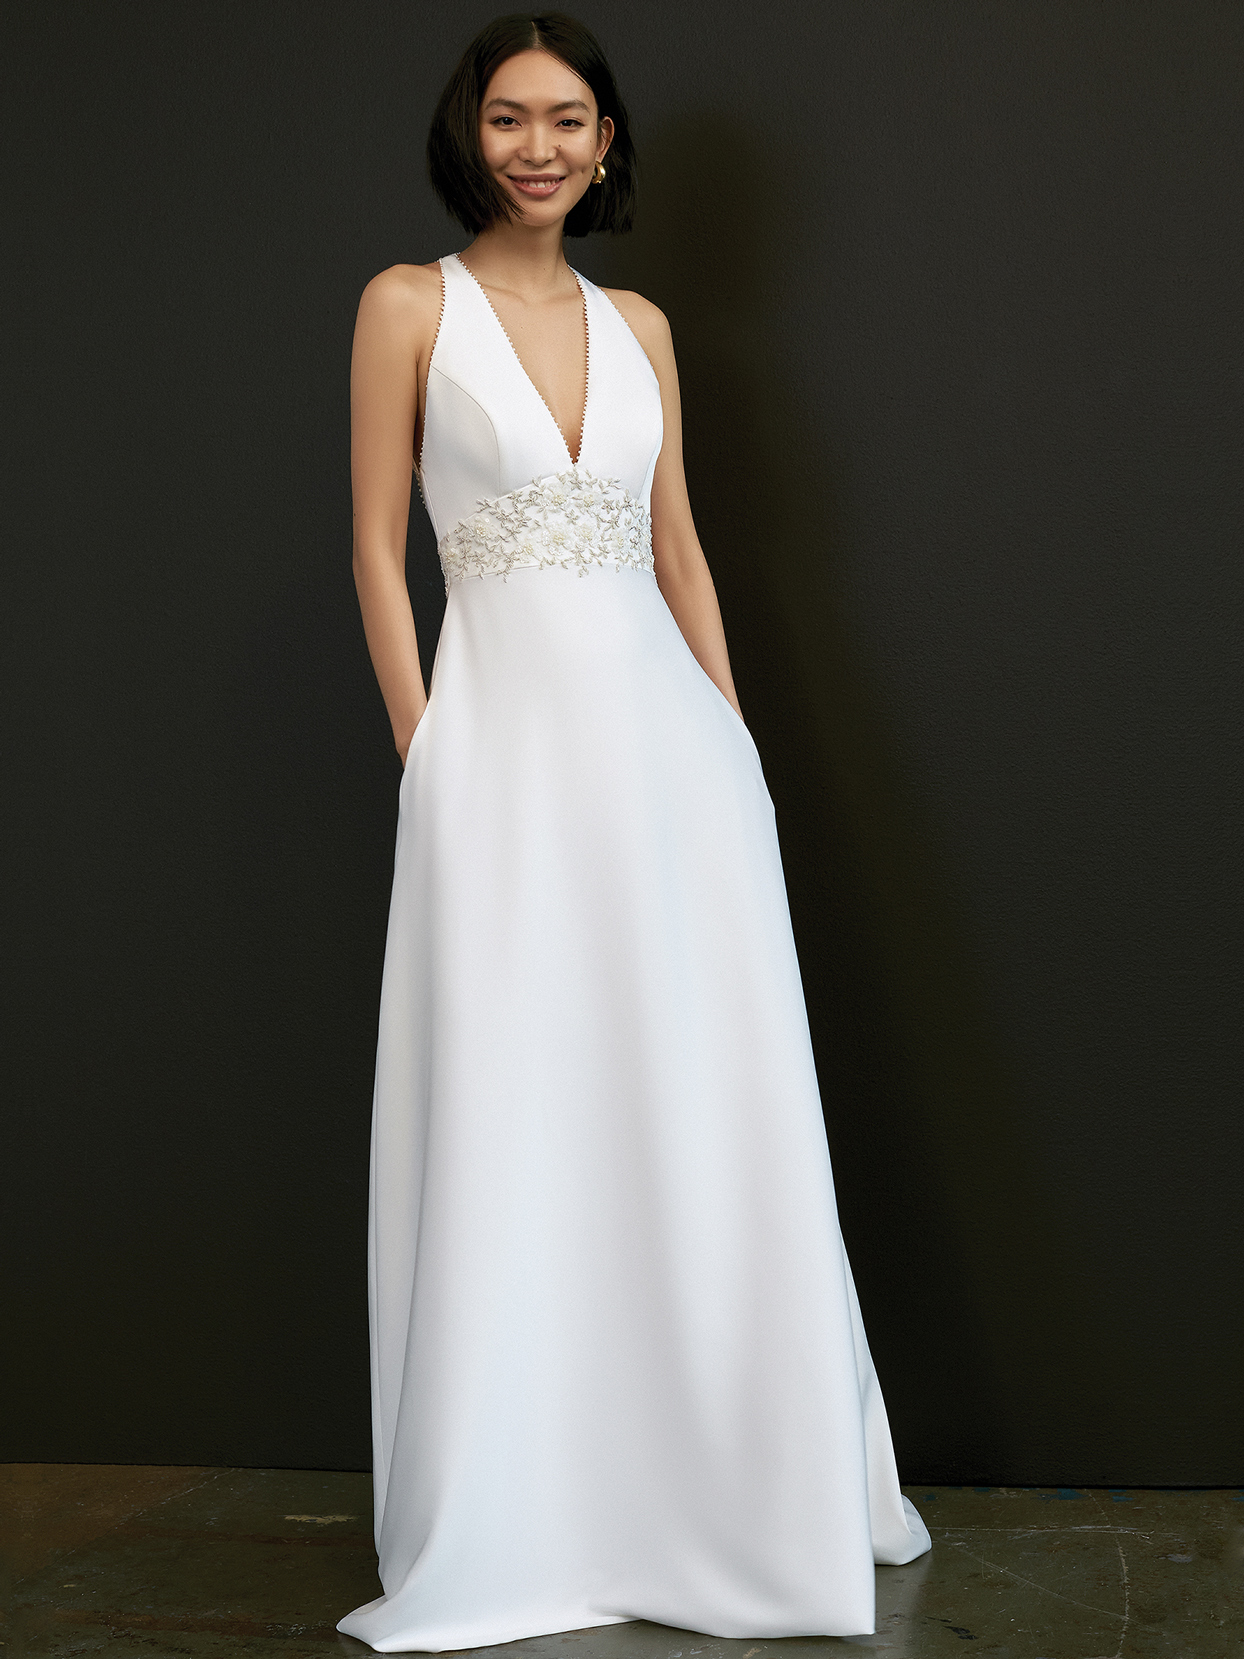 savannah miller deep v-neck beaded waist accent wedding dress spring 2021